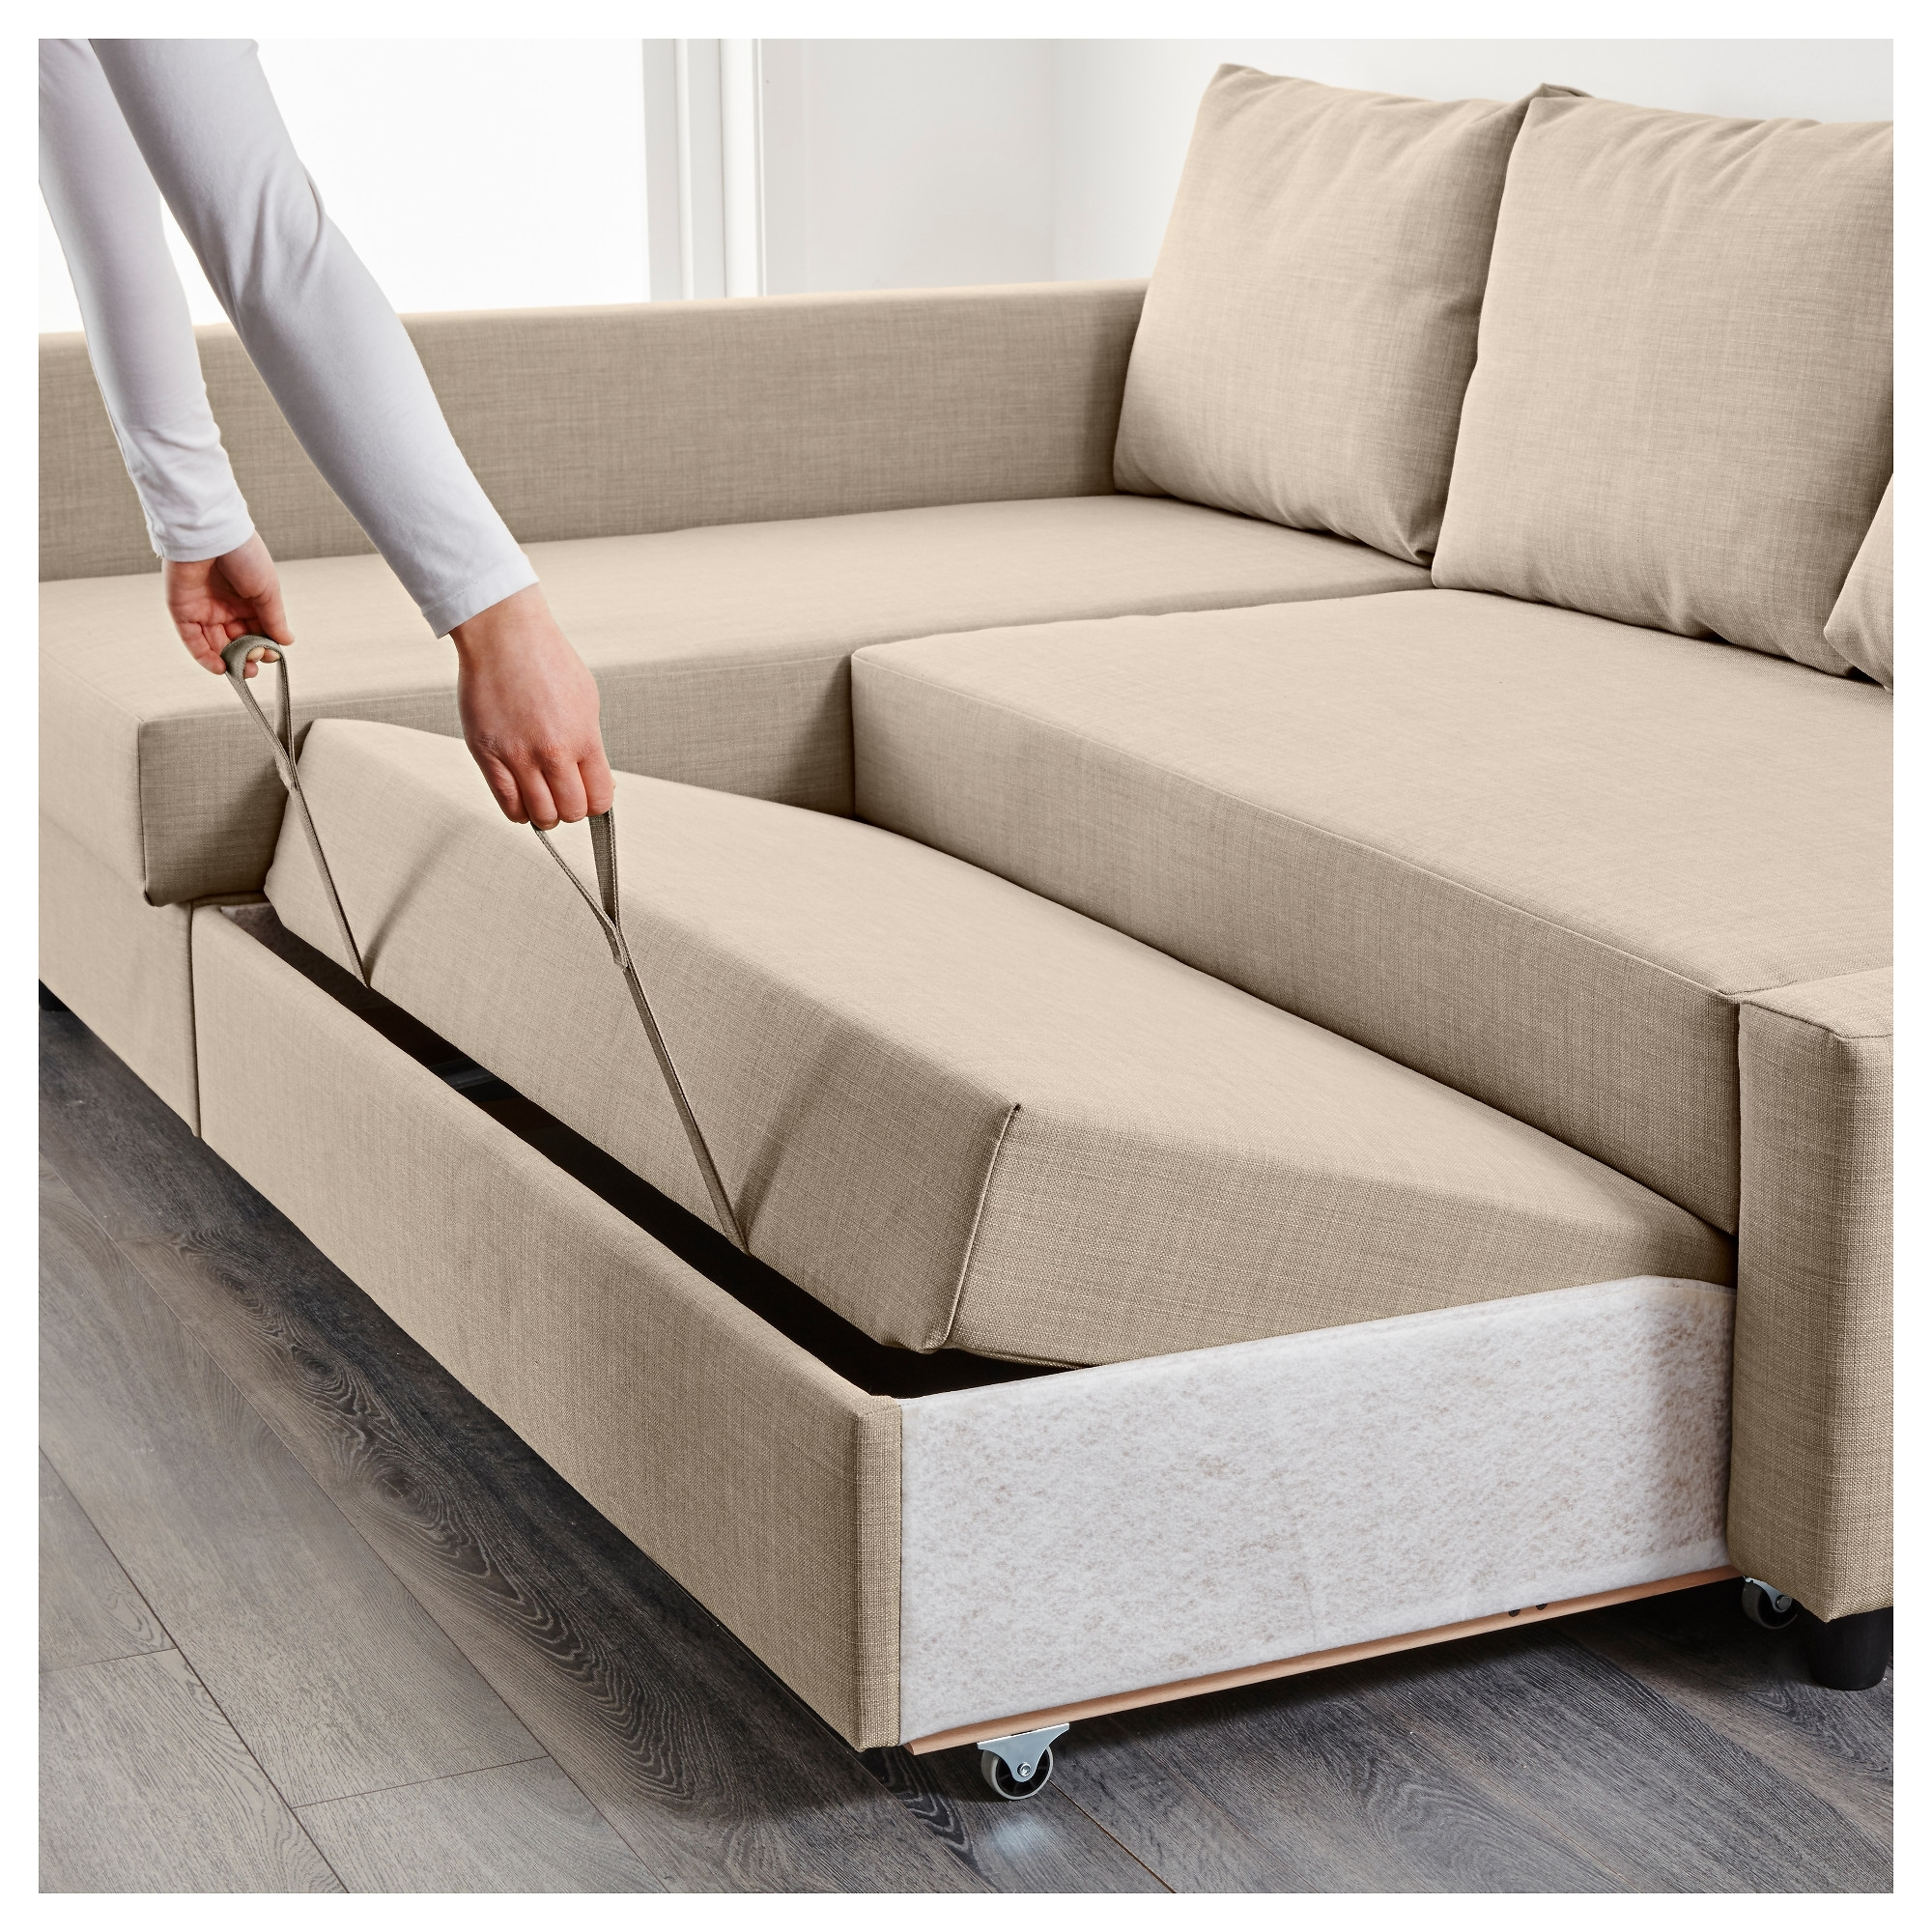 Friheten Corner Sofa Bed With Storage Skiftebo Beige – Ikea Inside Ikea Corner Sofas With Storage (View 5 of 10)